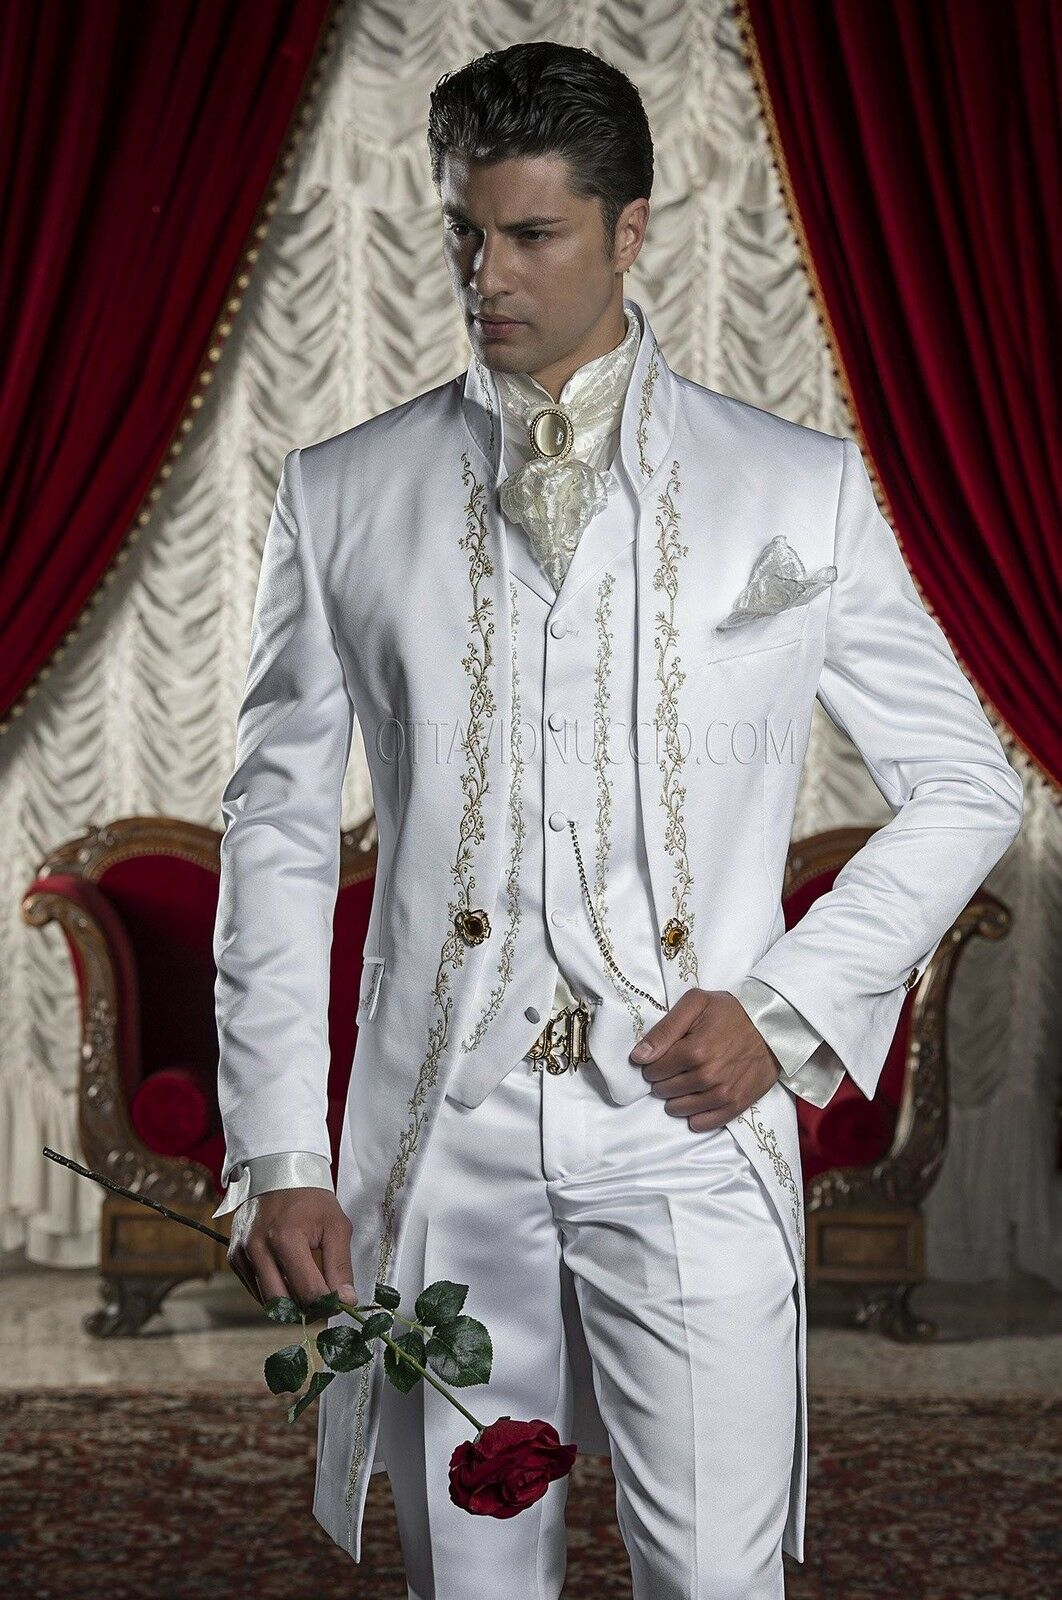 Embroidery Tuxedo Groom Men's Suits White Groomsman Best Man Wedding Prom Suits